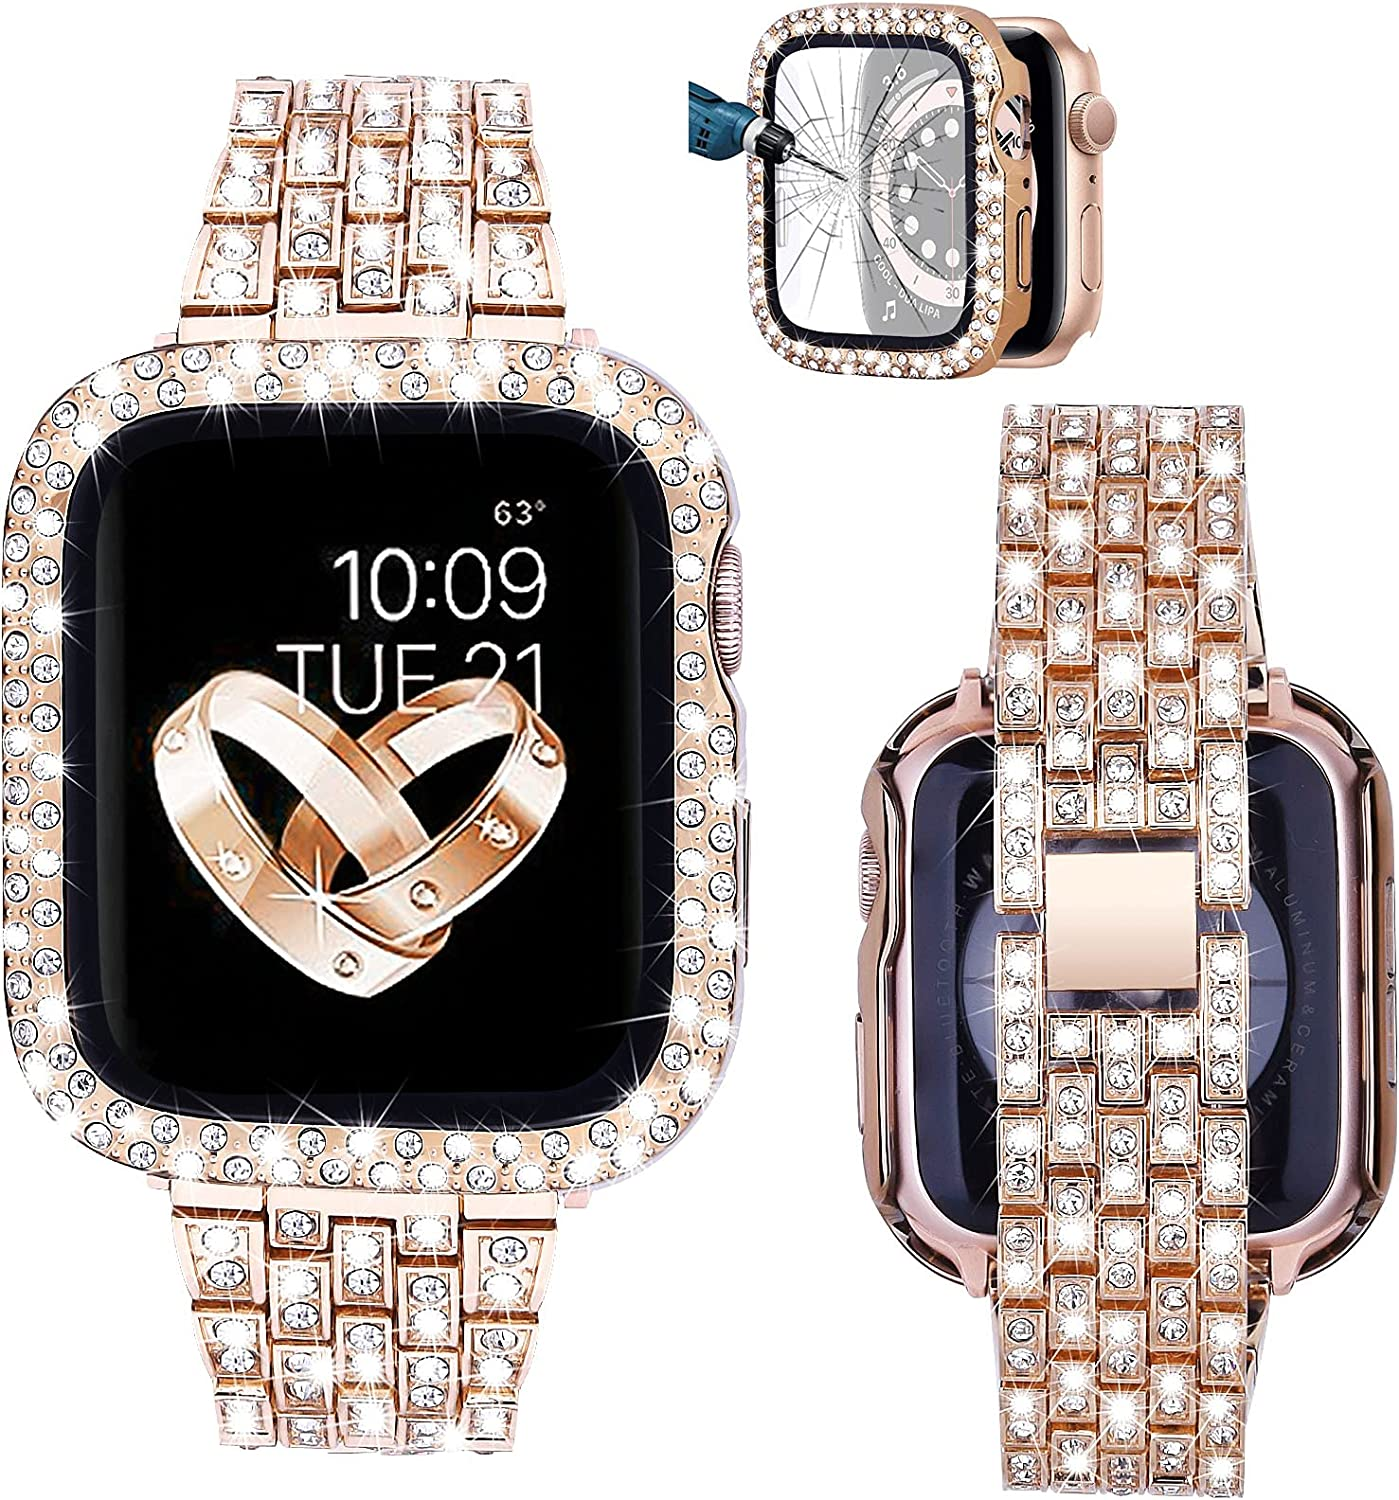 V-MORO Bands Compatible with Series 6 Apple Watch Band 40mm Women with Screen Protector Case, Jewelry Bling Diamond Metal Strap with Full Cover Protective Cases for iWatch Series SE/5/4 40mm Rose Gold